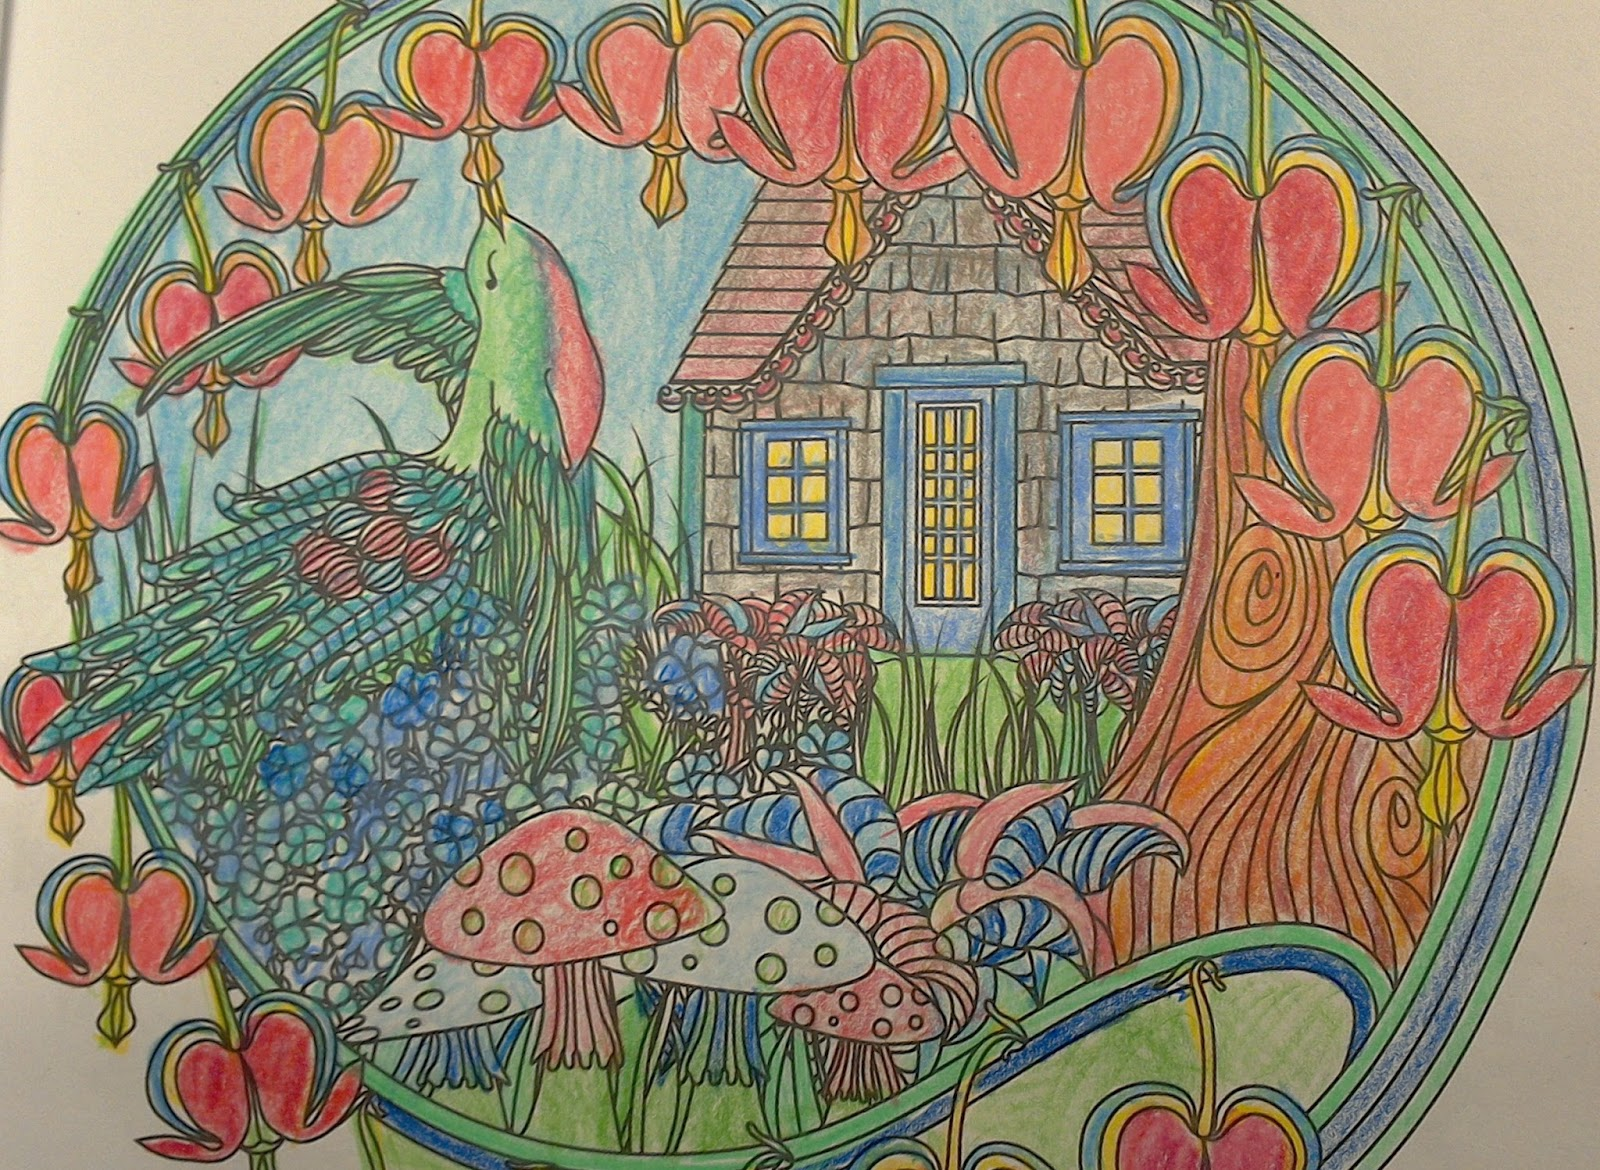 Adult Coloring Books Allow For A Surprising Range Of Creative Responses You Decide What Materials To Use Crayons Markers Colored Pencils